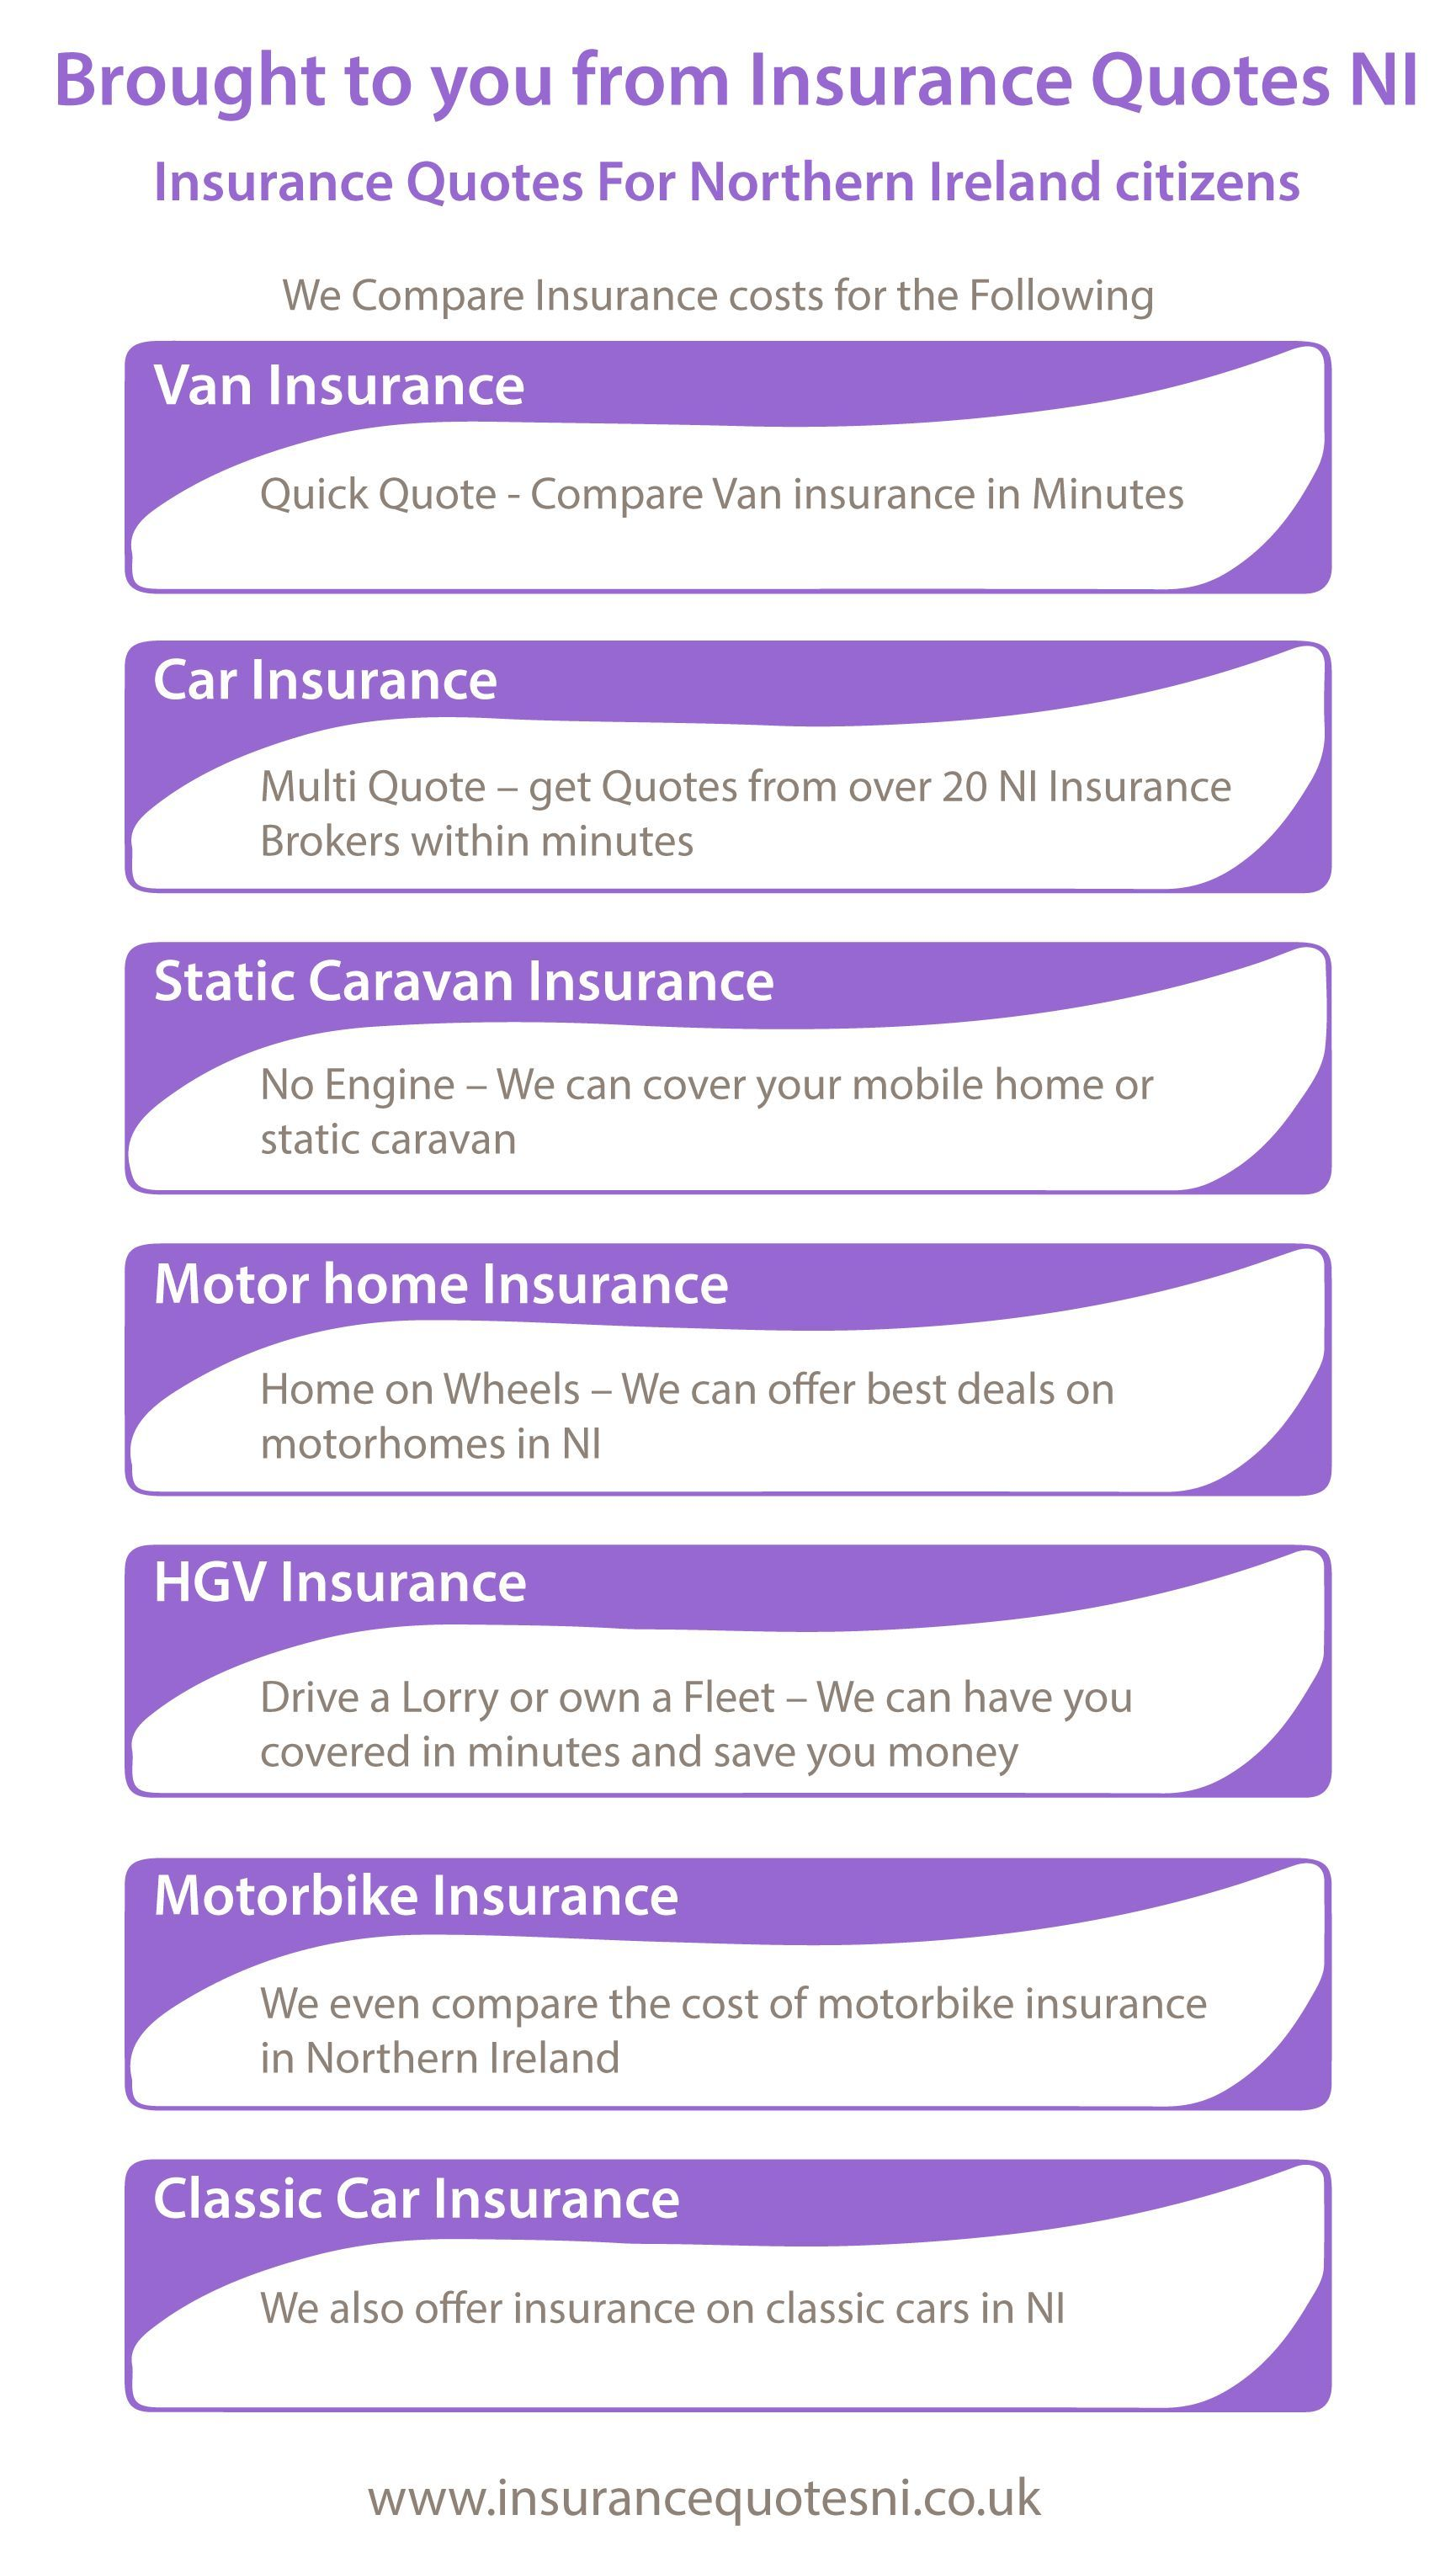 50 Unique Home Insurance Quotes For Northern Ireland In 2020 Home Insurance Quotes Auto Insurance Quotes Insurance Quotes